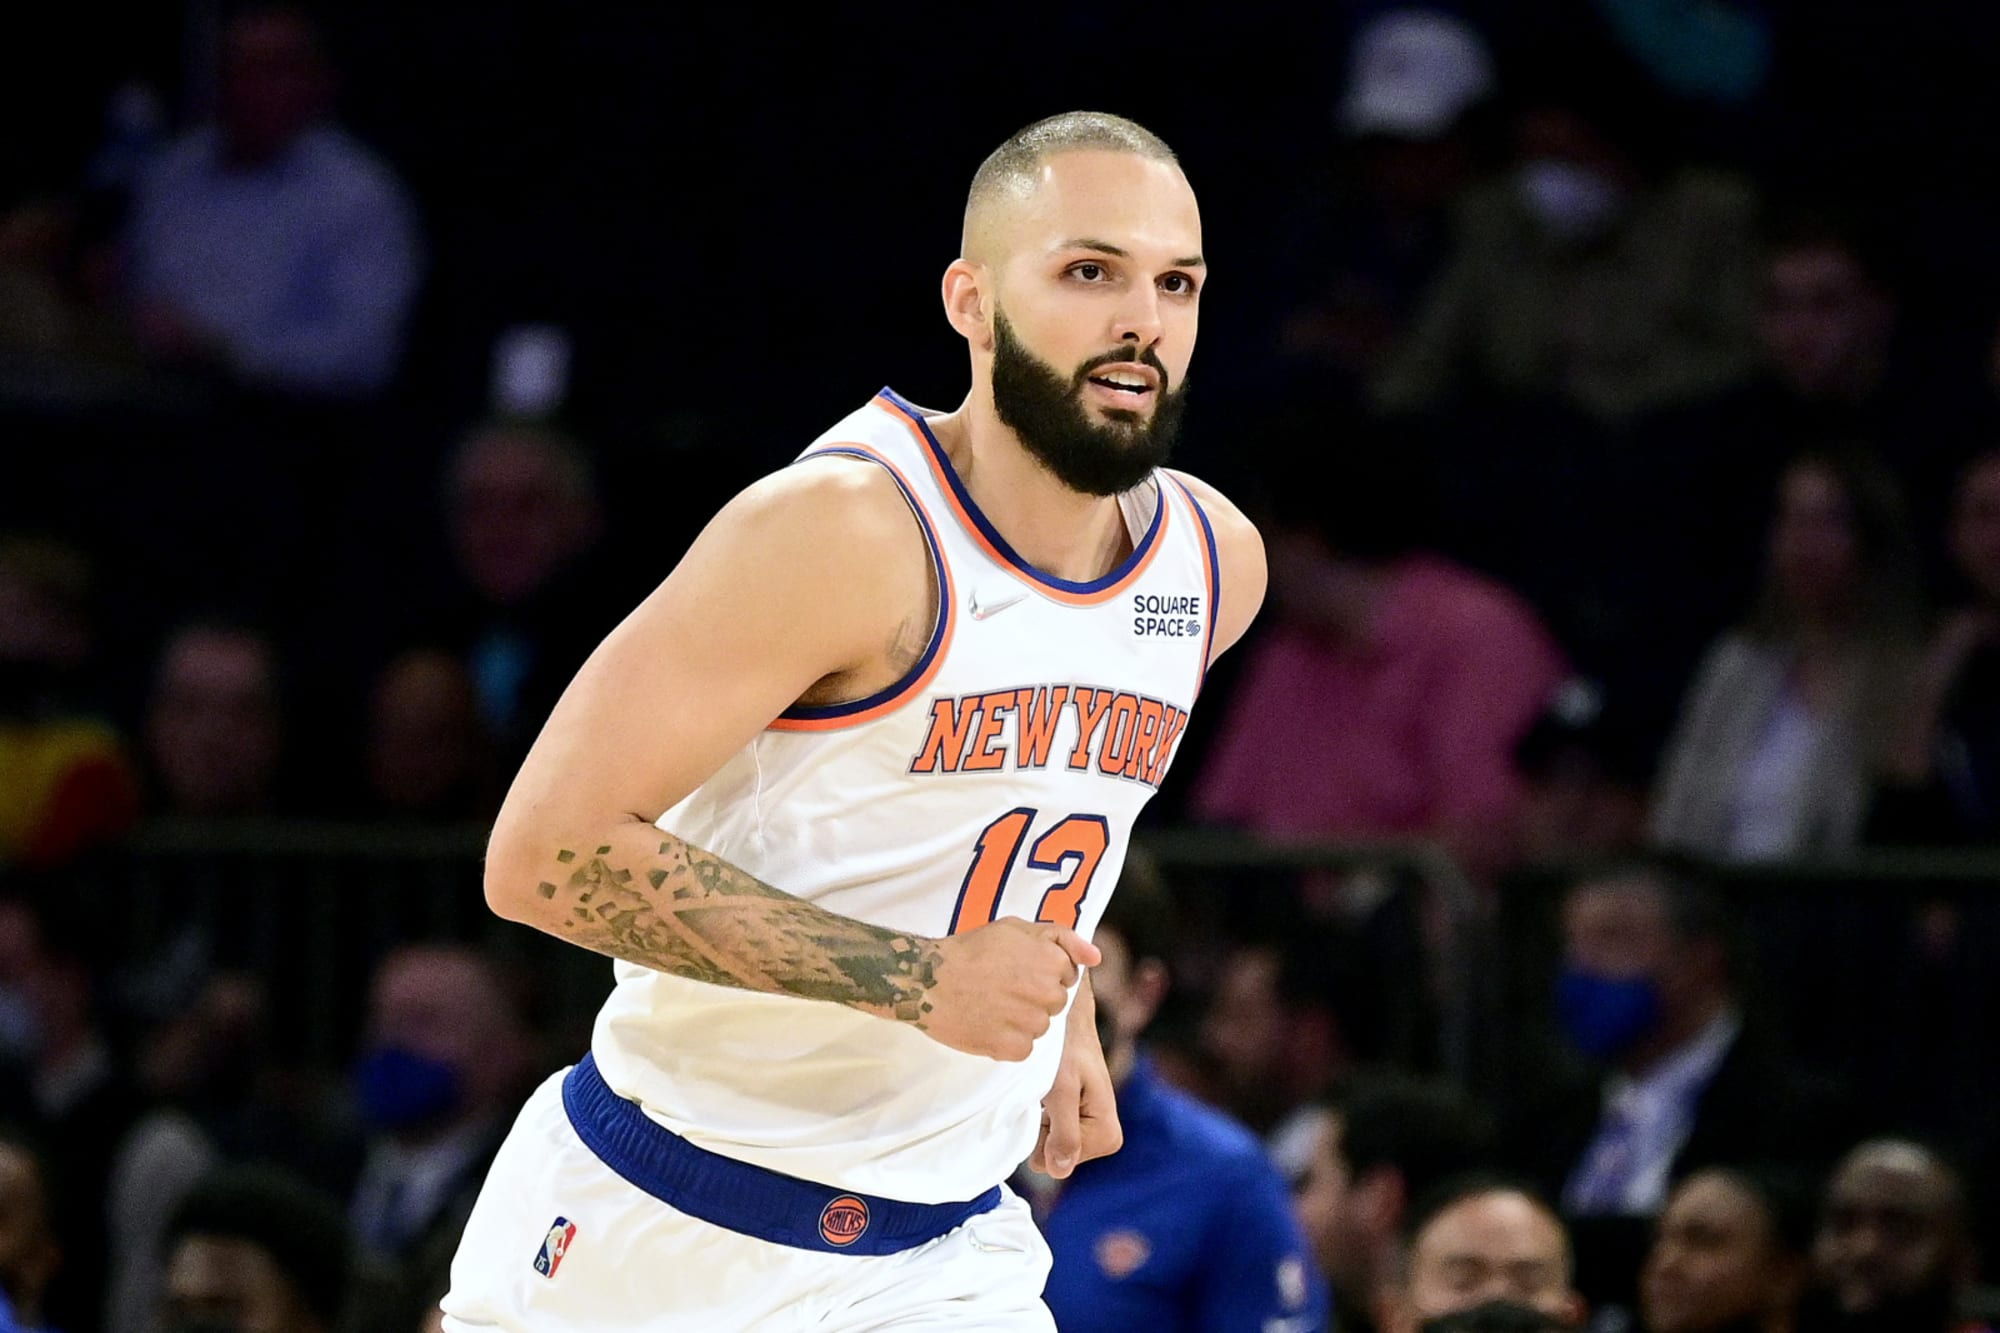 Love affair between Evan Fournier and Knicks fans is just getting started